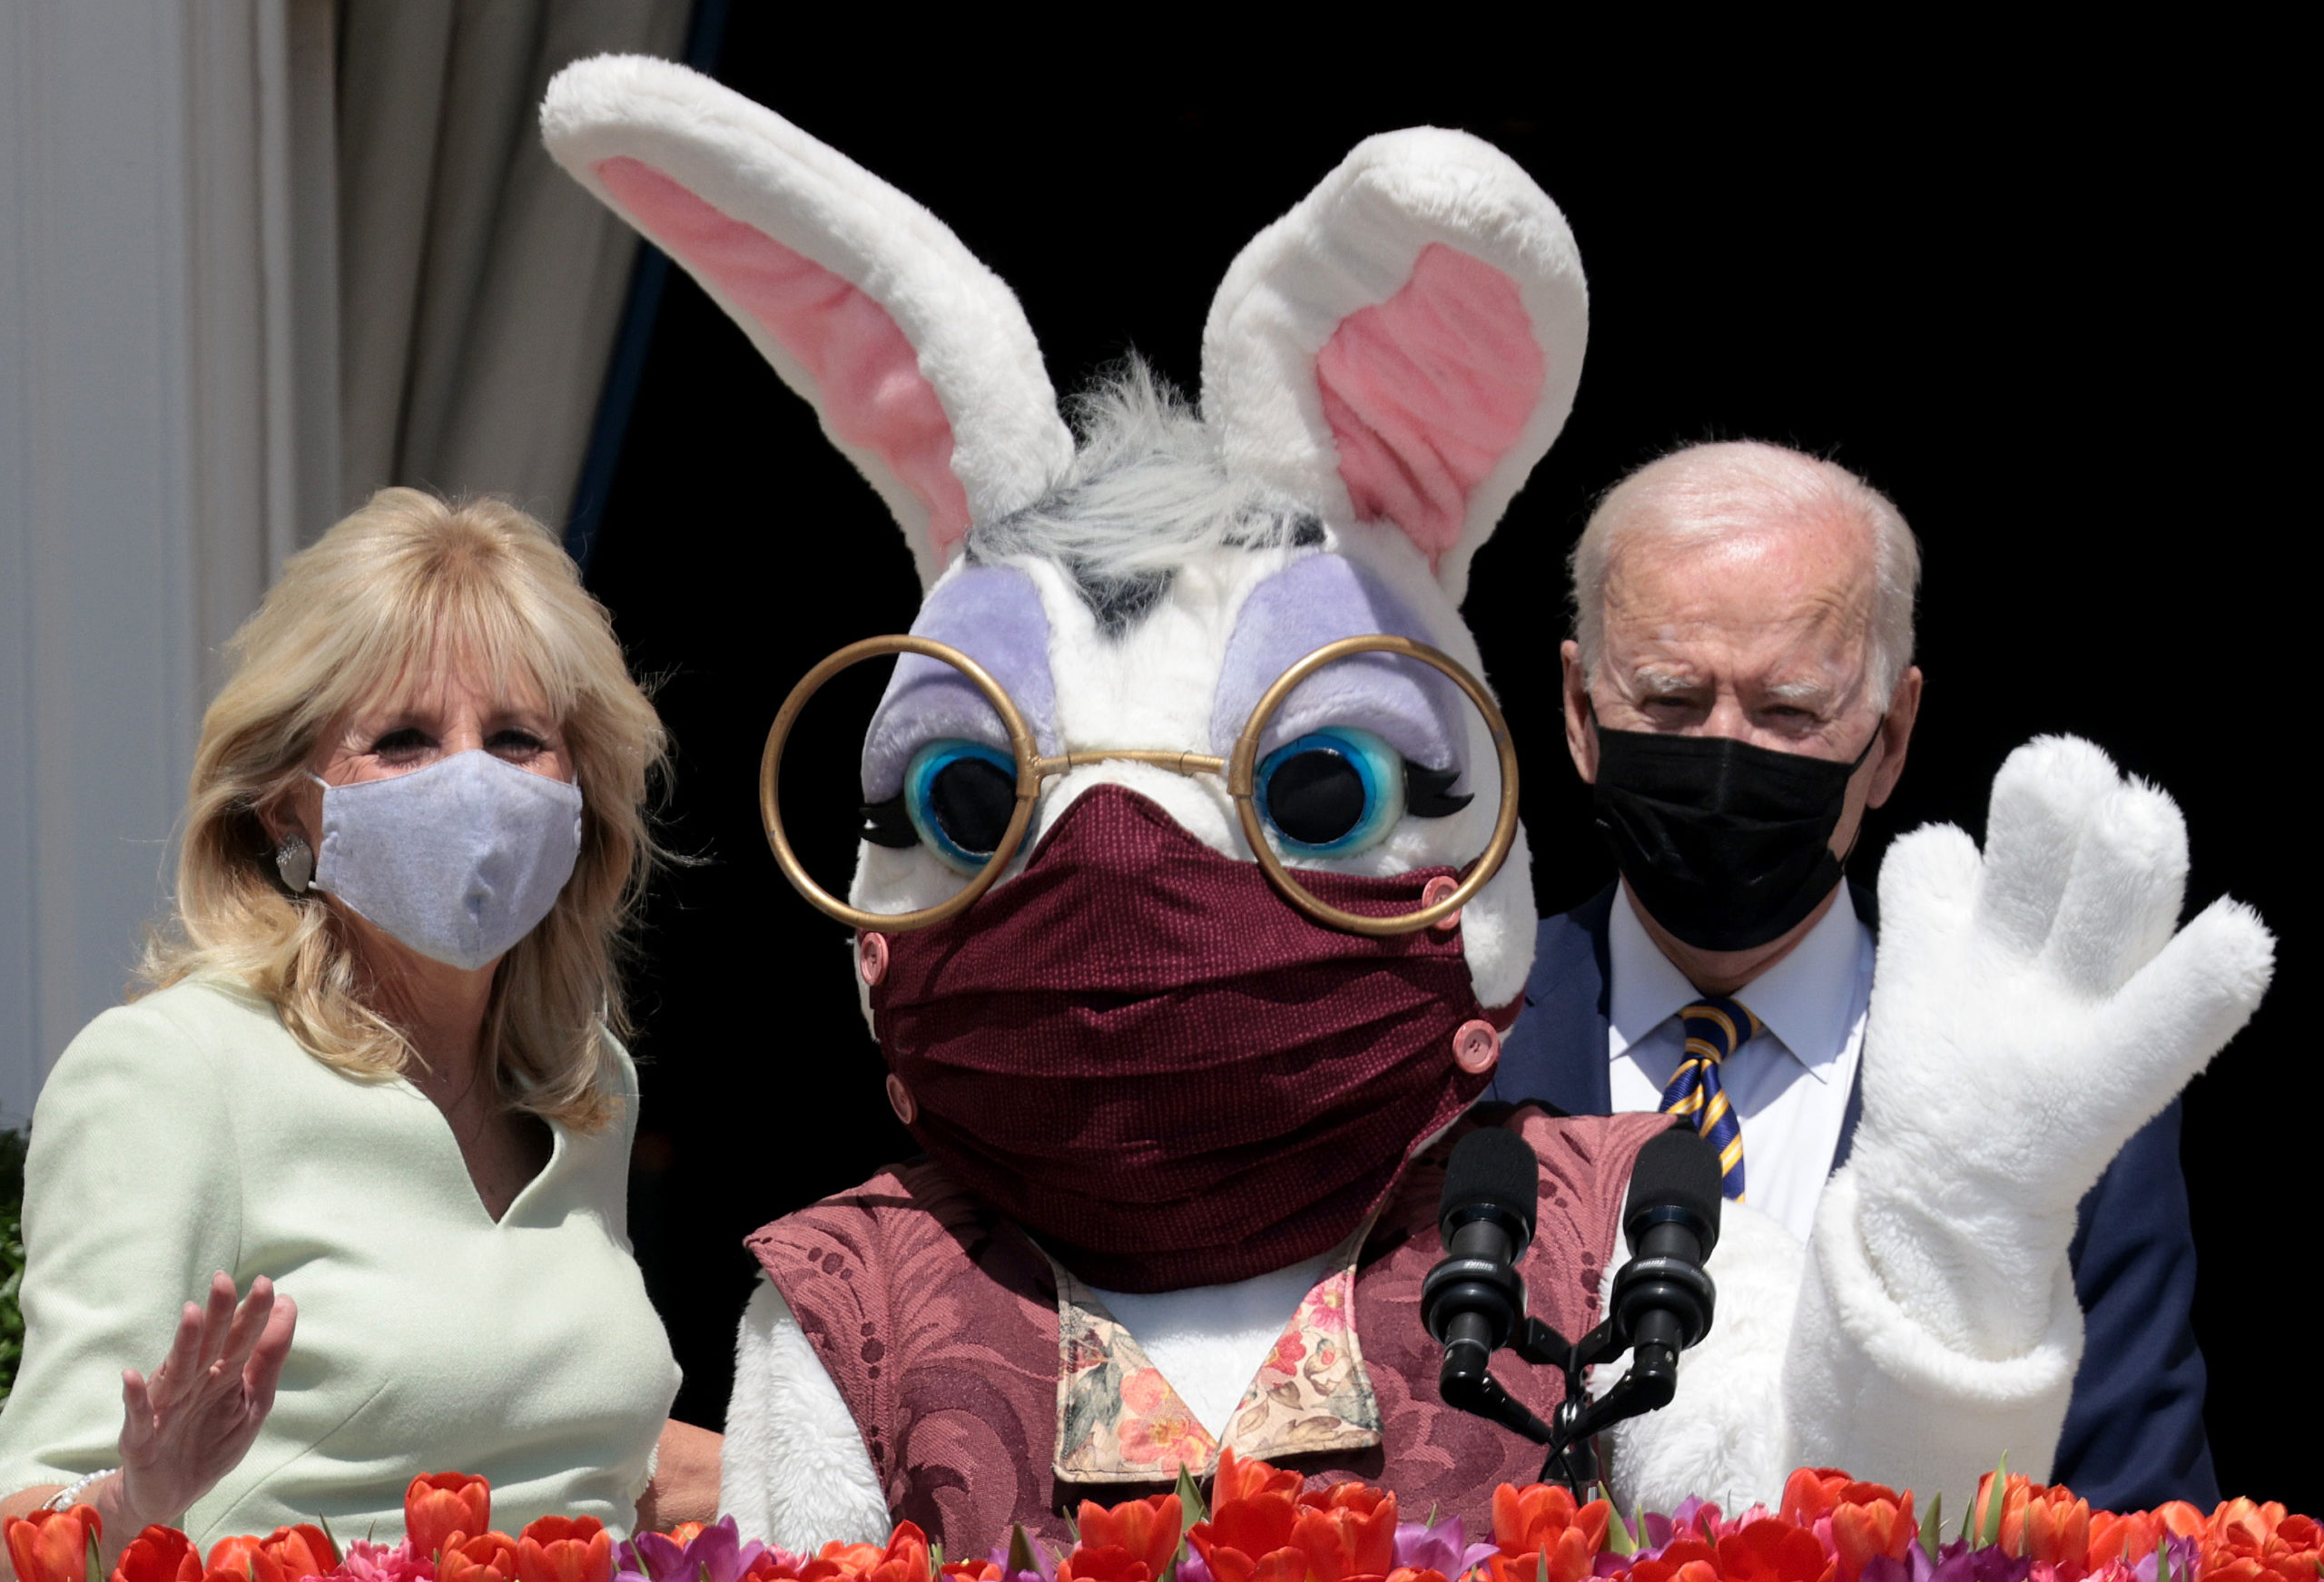 WASHINGTON, DC - APRIL 05: U.S. President Joe Biden and first lady Jill Biden appear with the Easter Bunny at the White House on April 05, 2021 in Washington, DC. The year's traditional Easter Egg Roll was canceled this year due to the coronavirus pandemic. (Photo by Win McNamee/Getty Images)